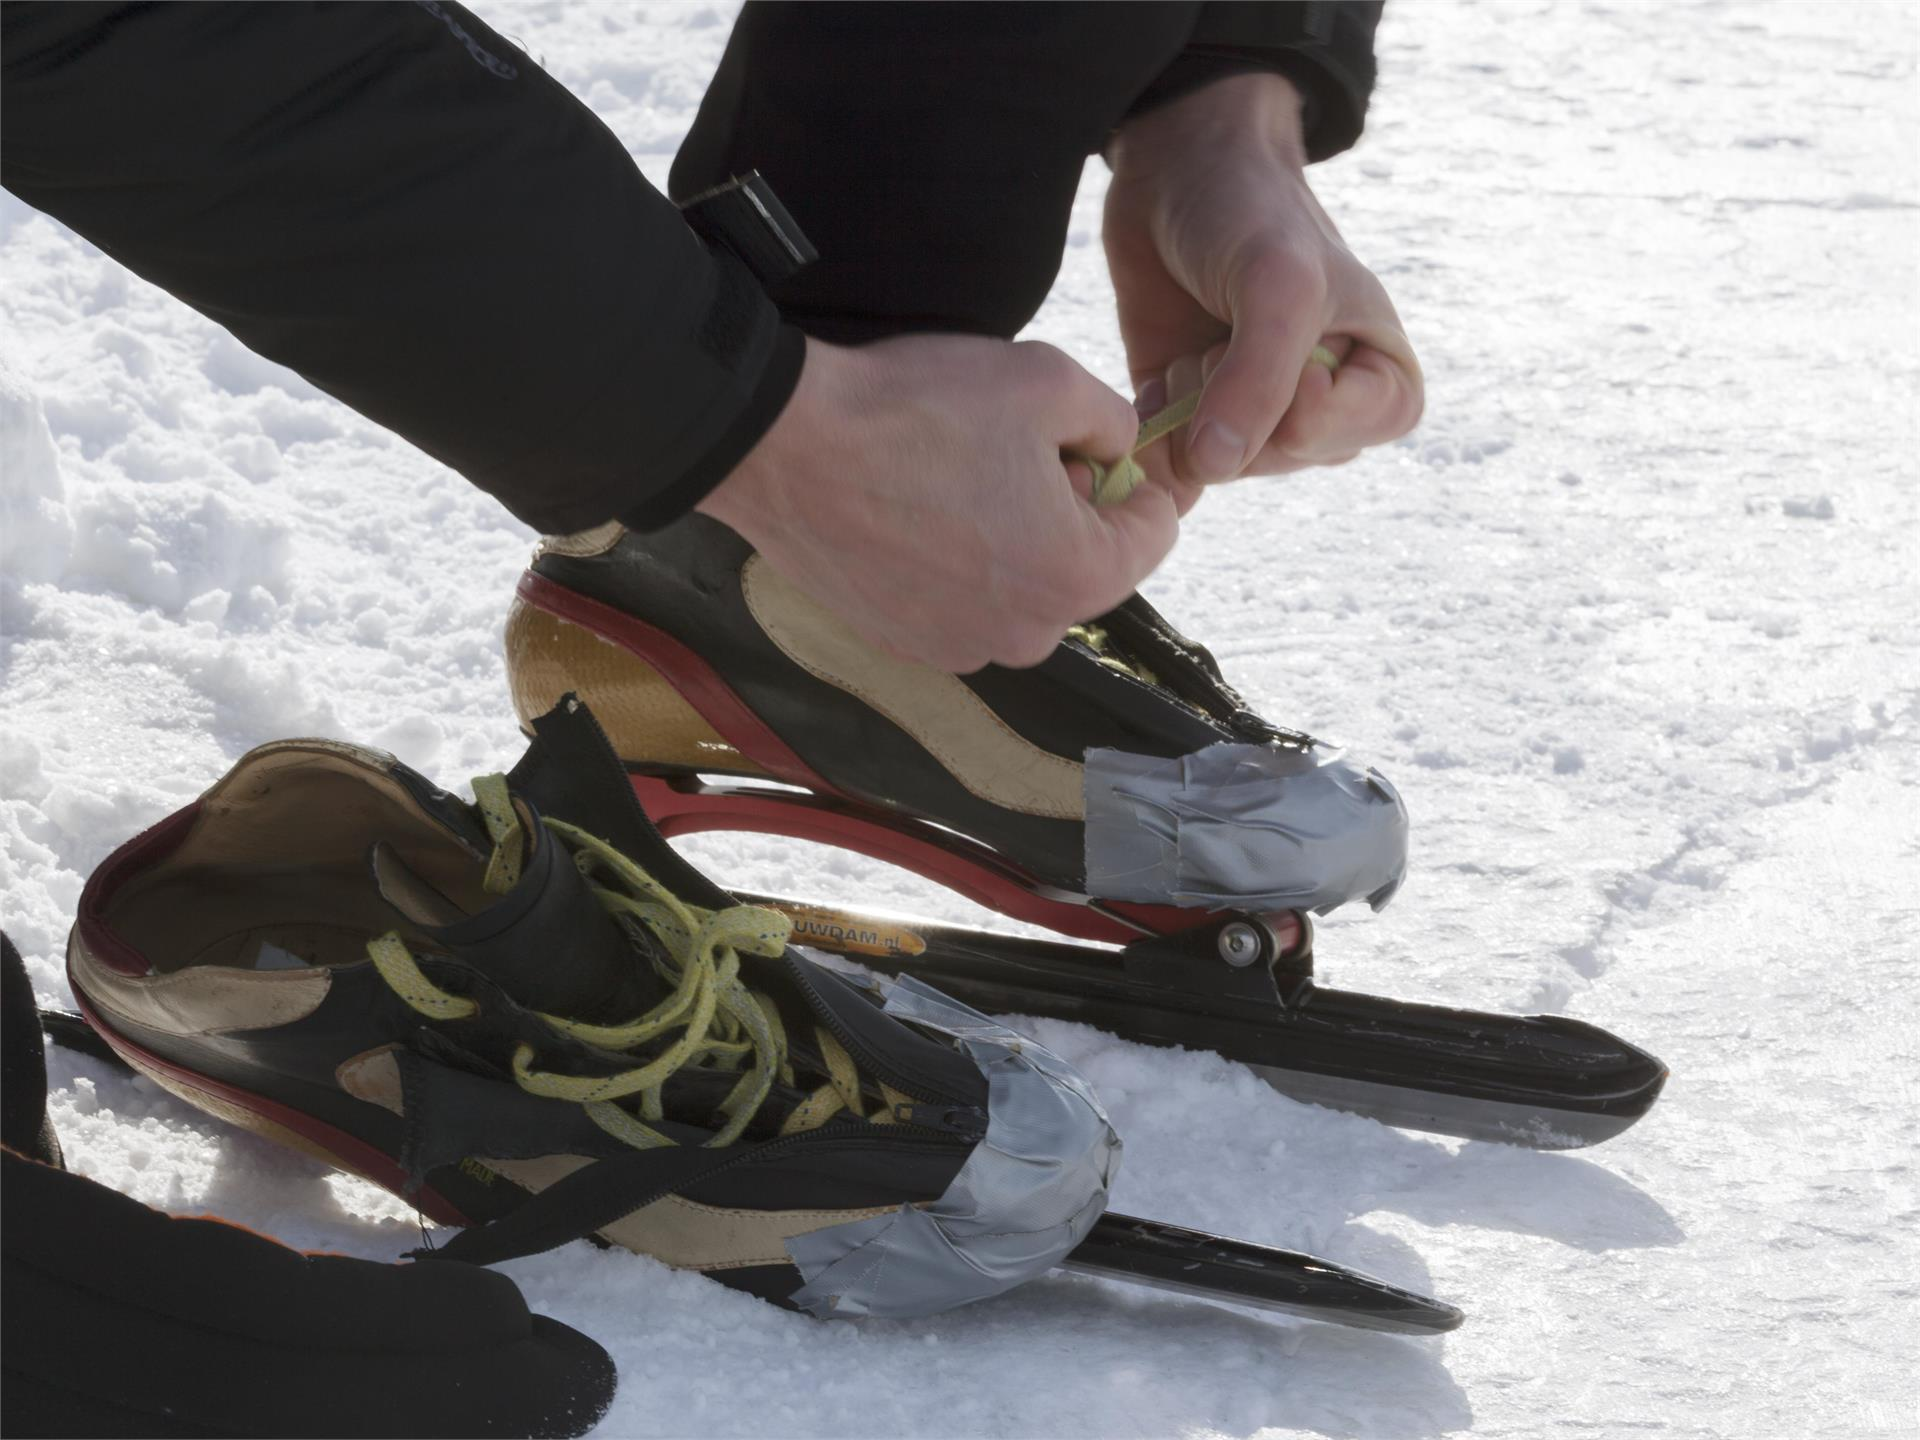 Ice-skating on the hill of Tarces